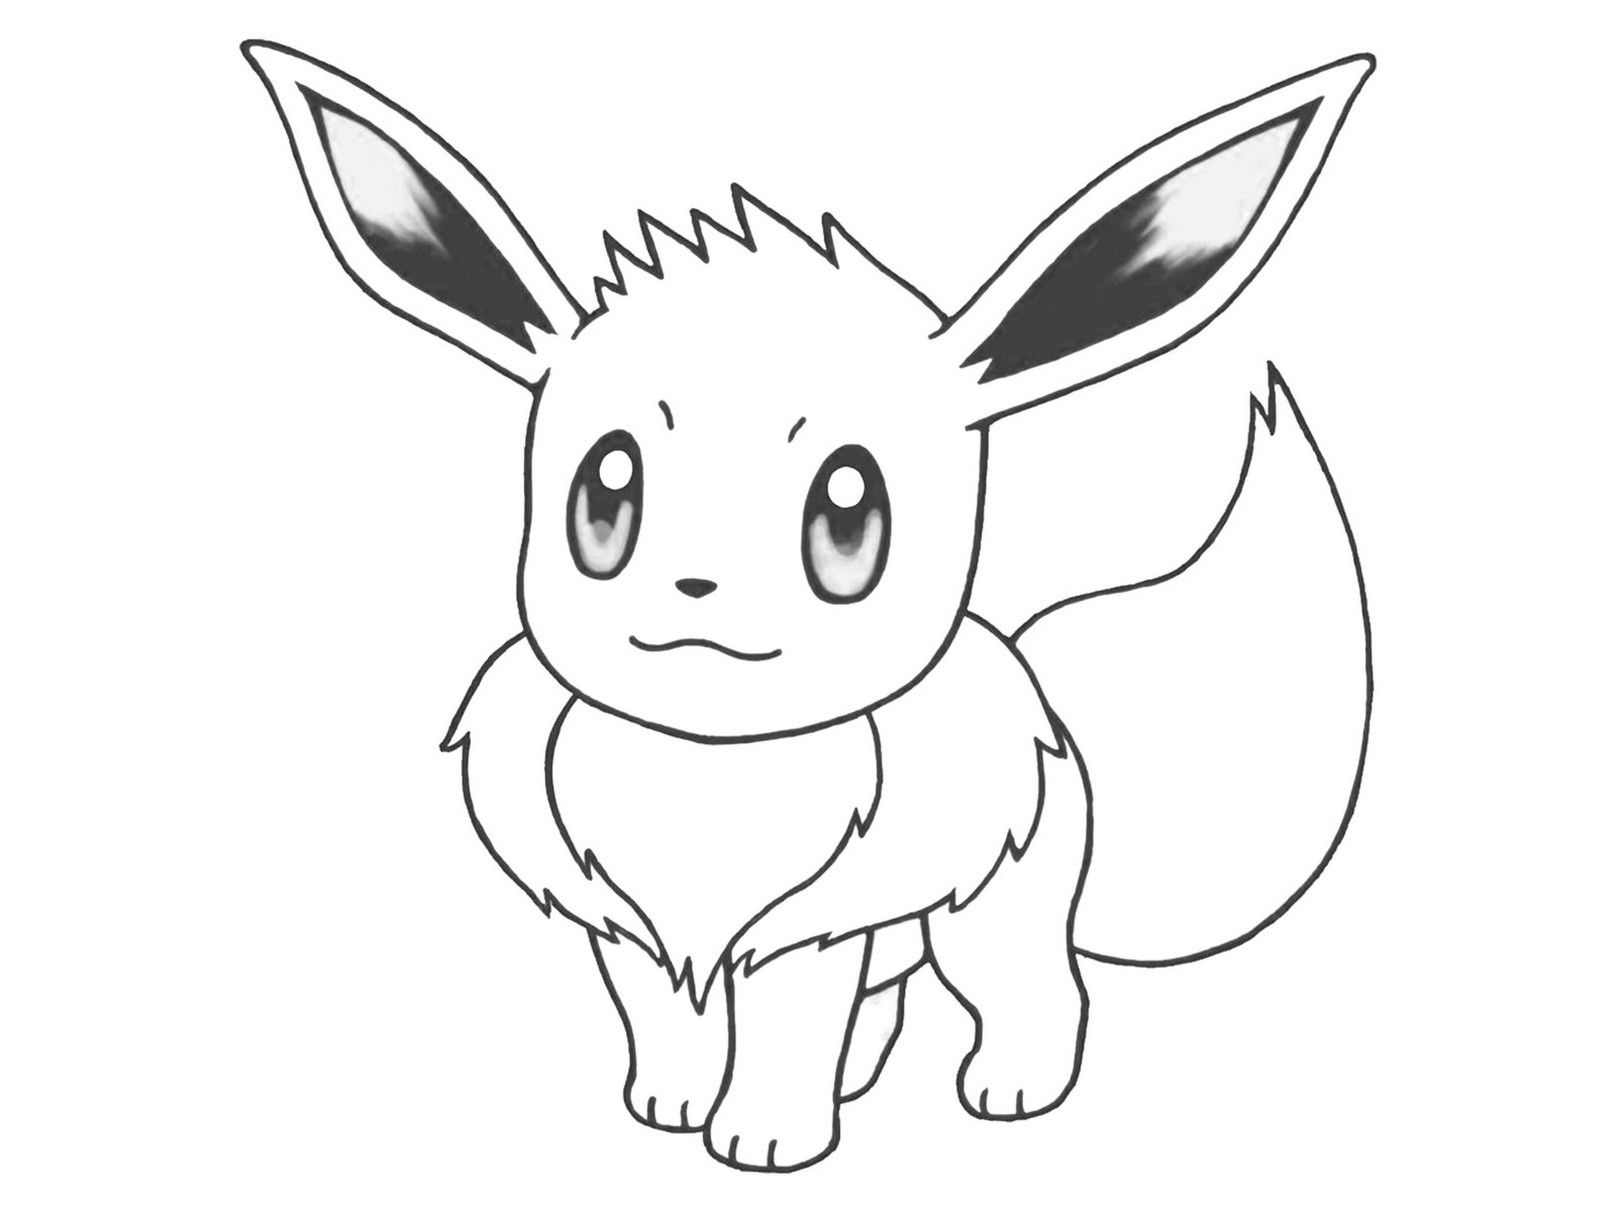 Eevee Coloring Pages Pokemon Coloring Pokemon Coloring Pages Animal Coloring Pages